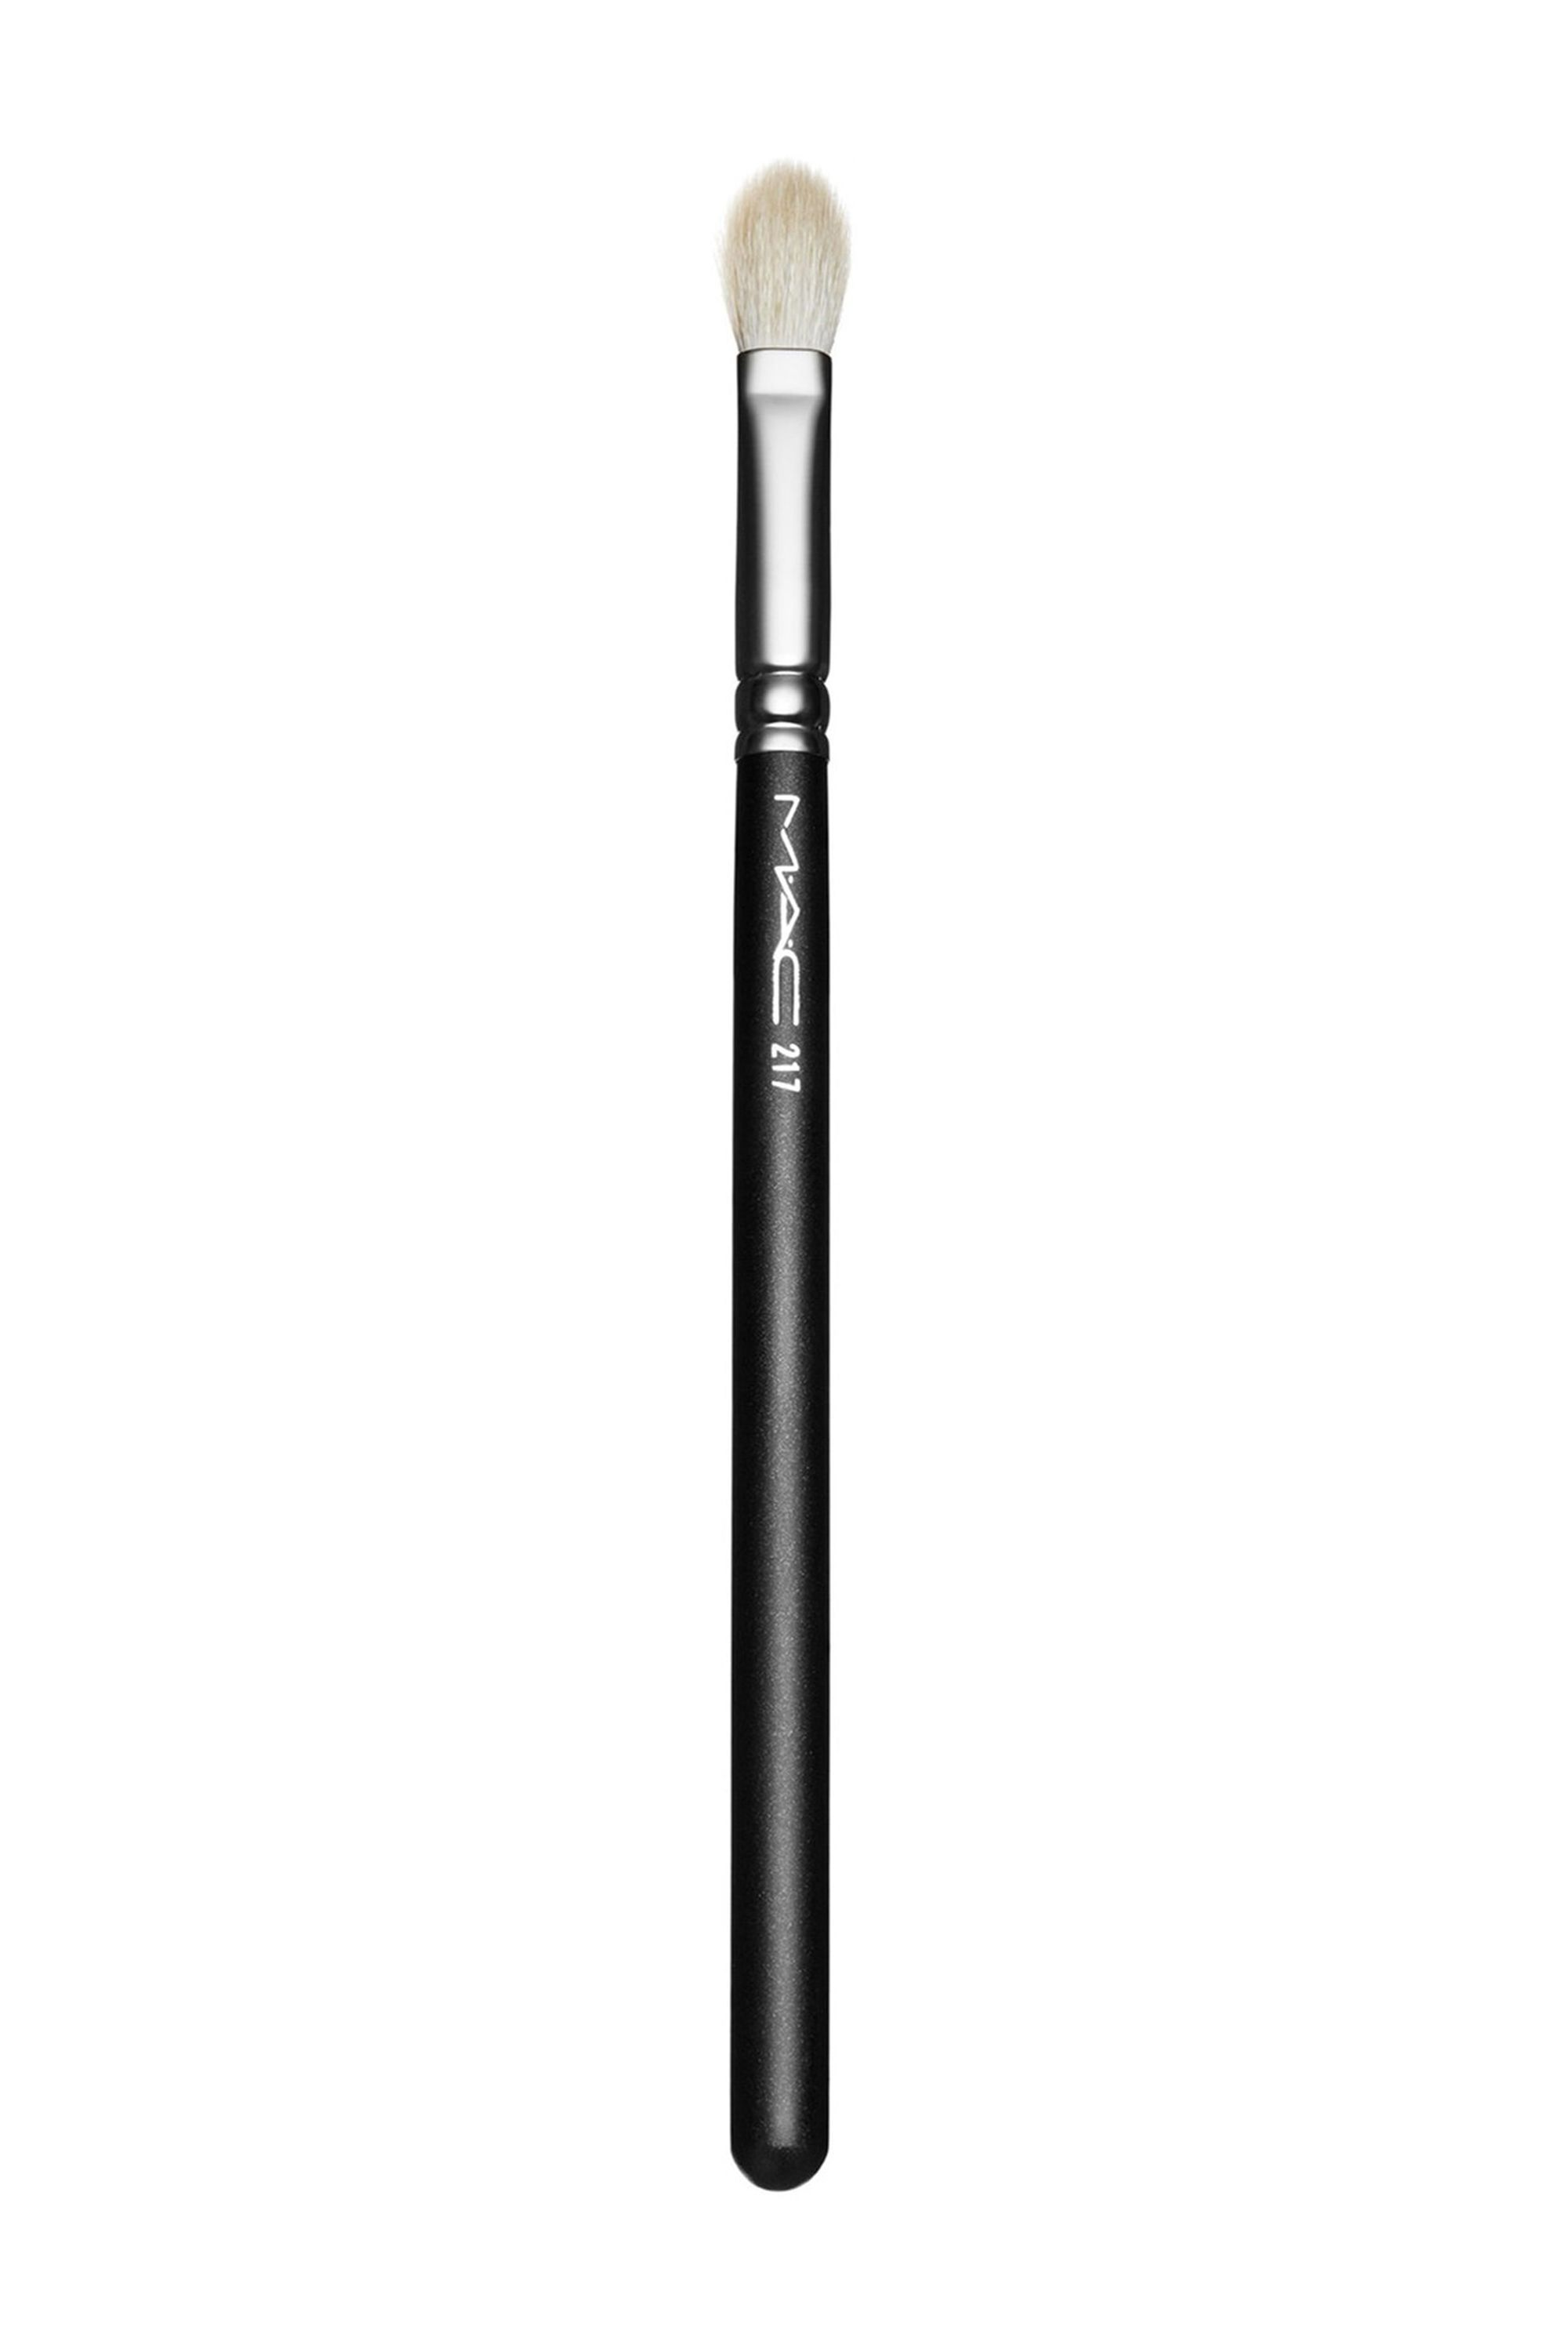 Fin 41 Best Makeup Brushes for 2019 - Build the Perfect Makeup Brush Set RV-71